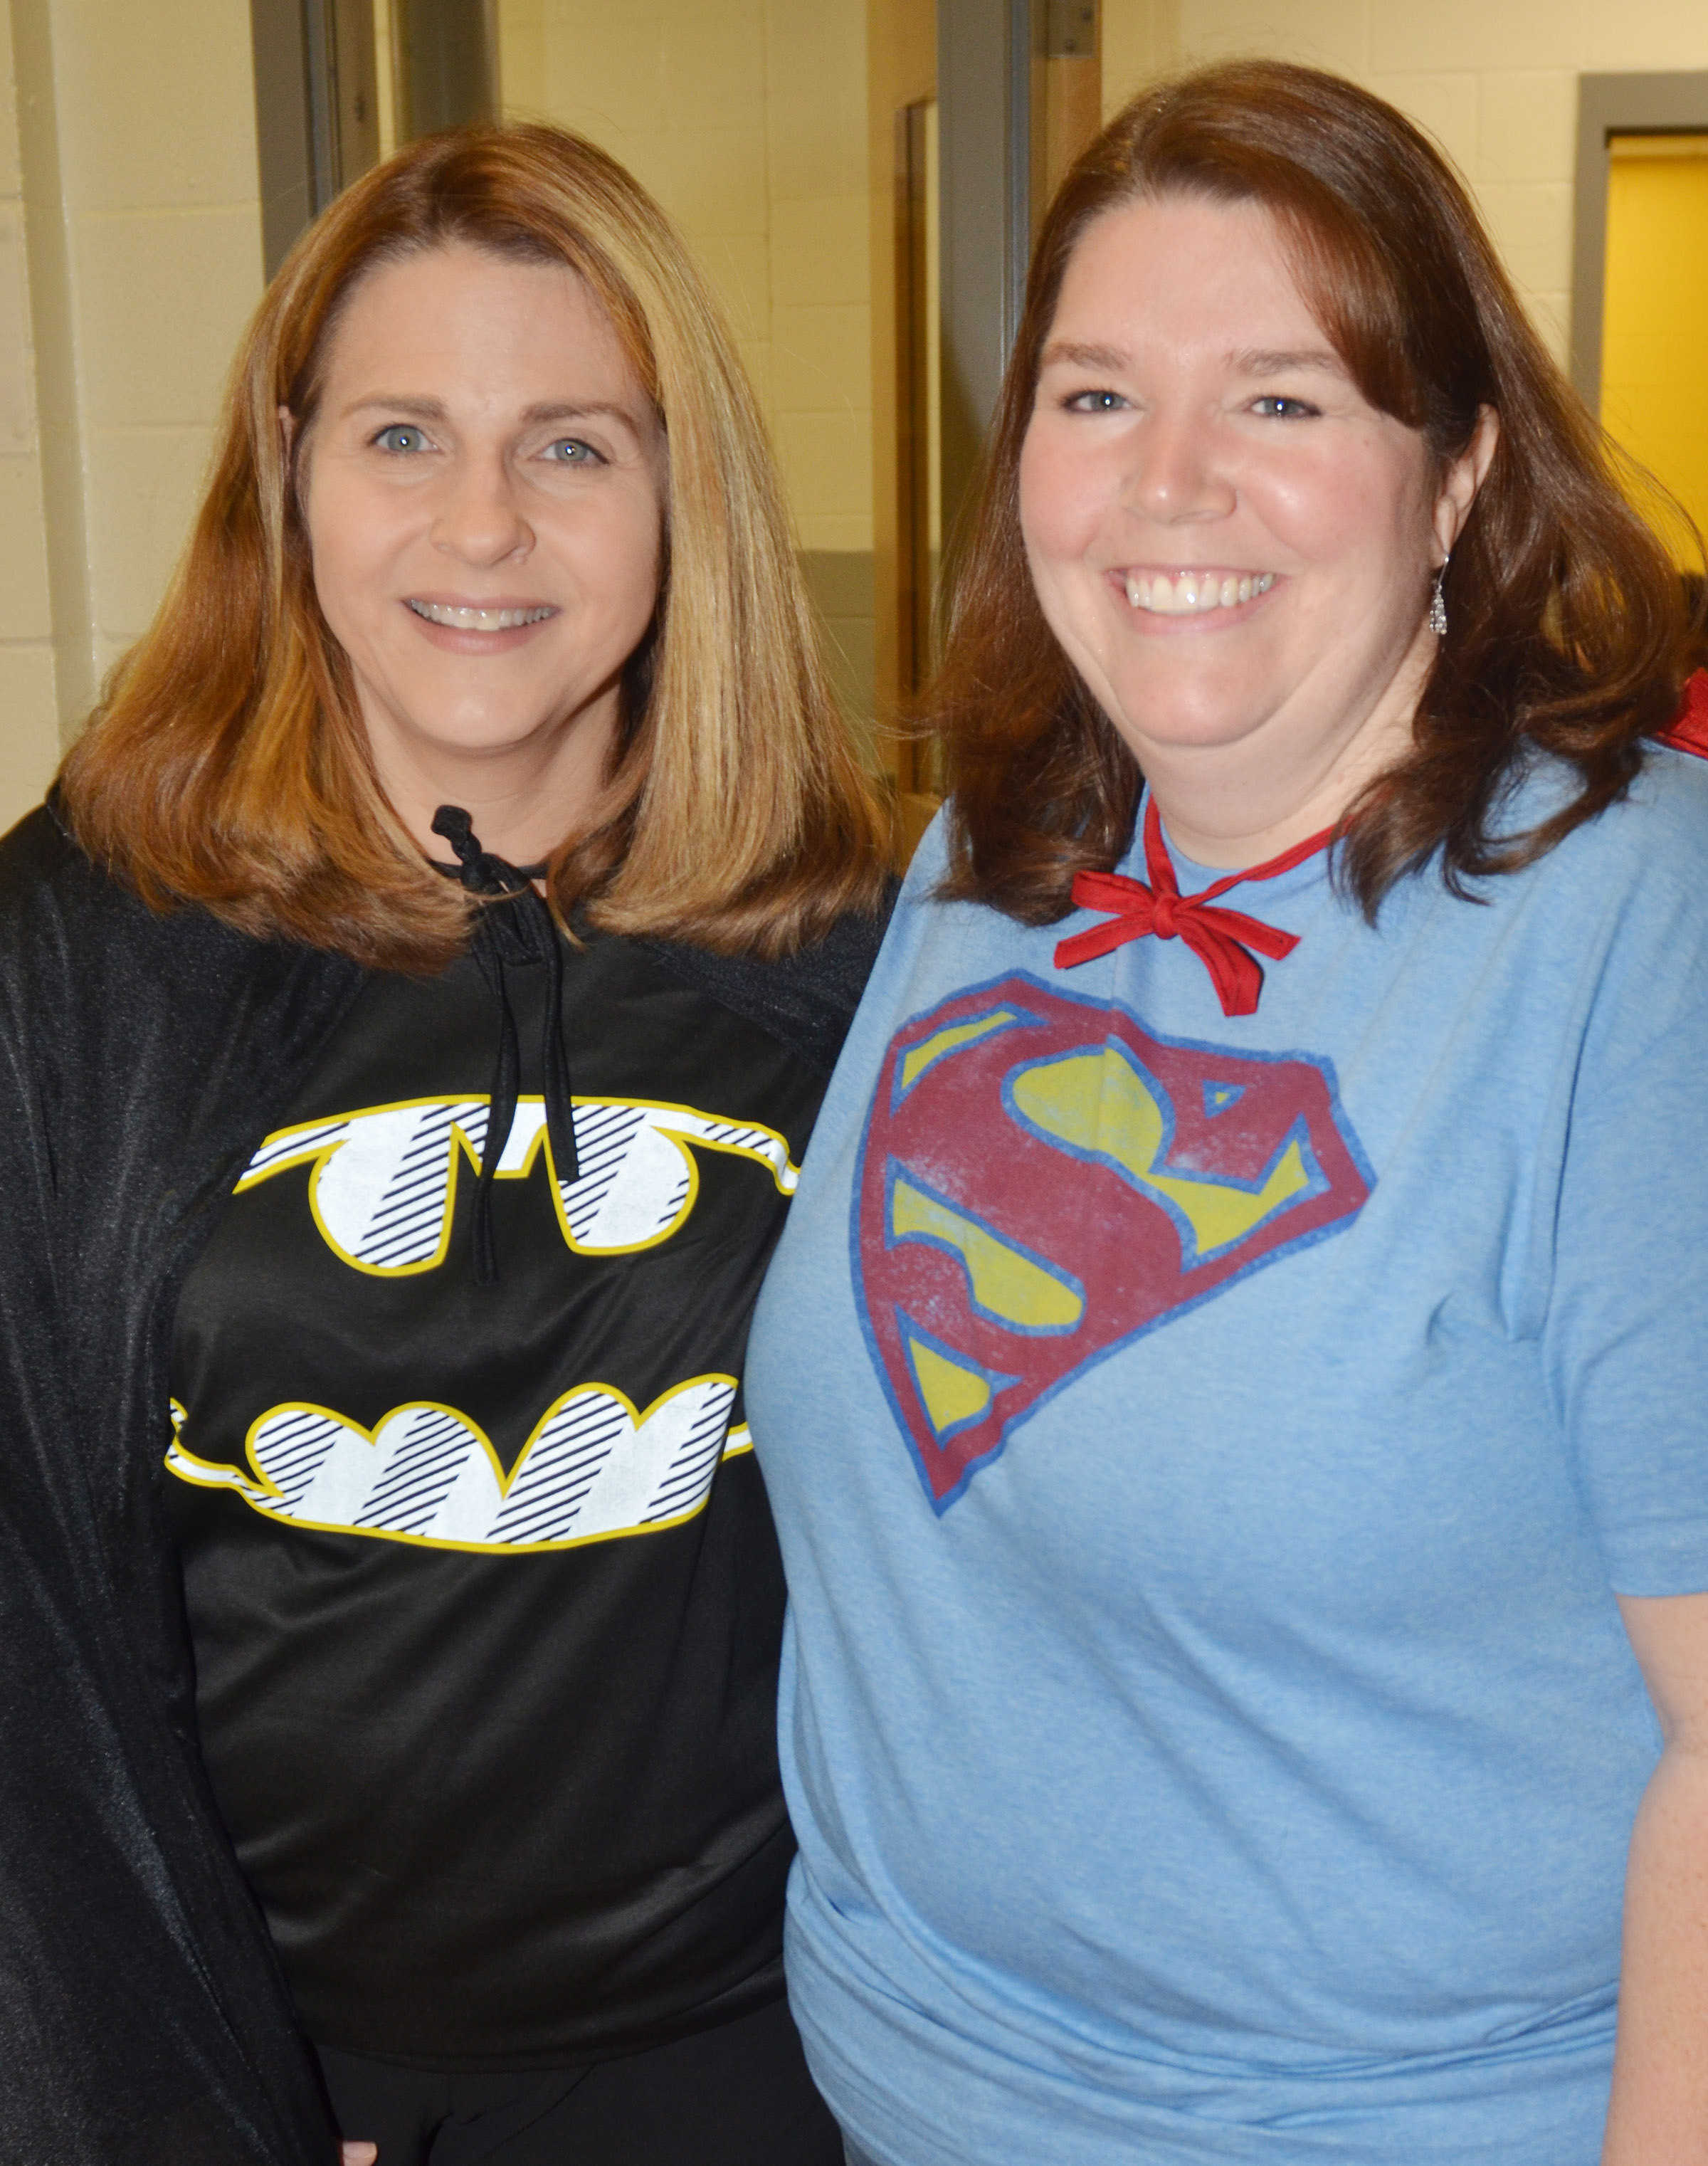 CES students and teachers wear superhero clothing, because superheroes don't do drugs.